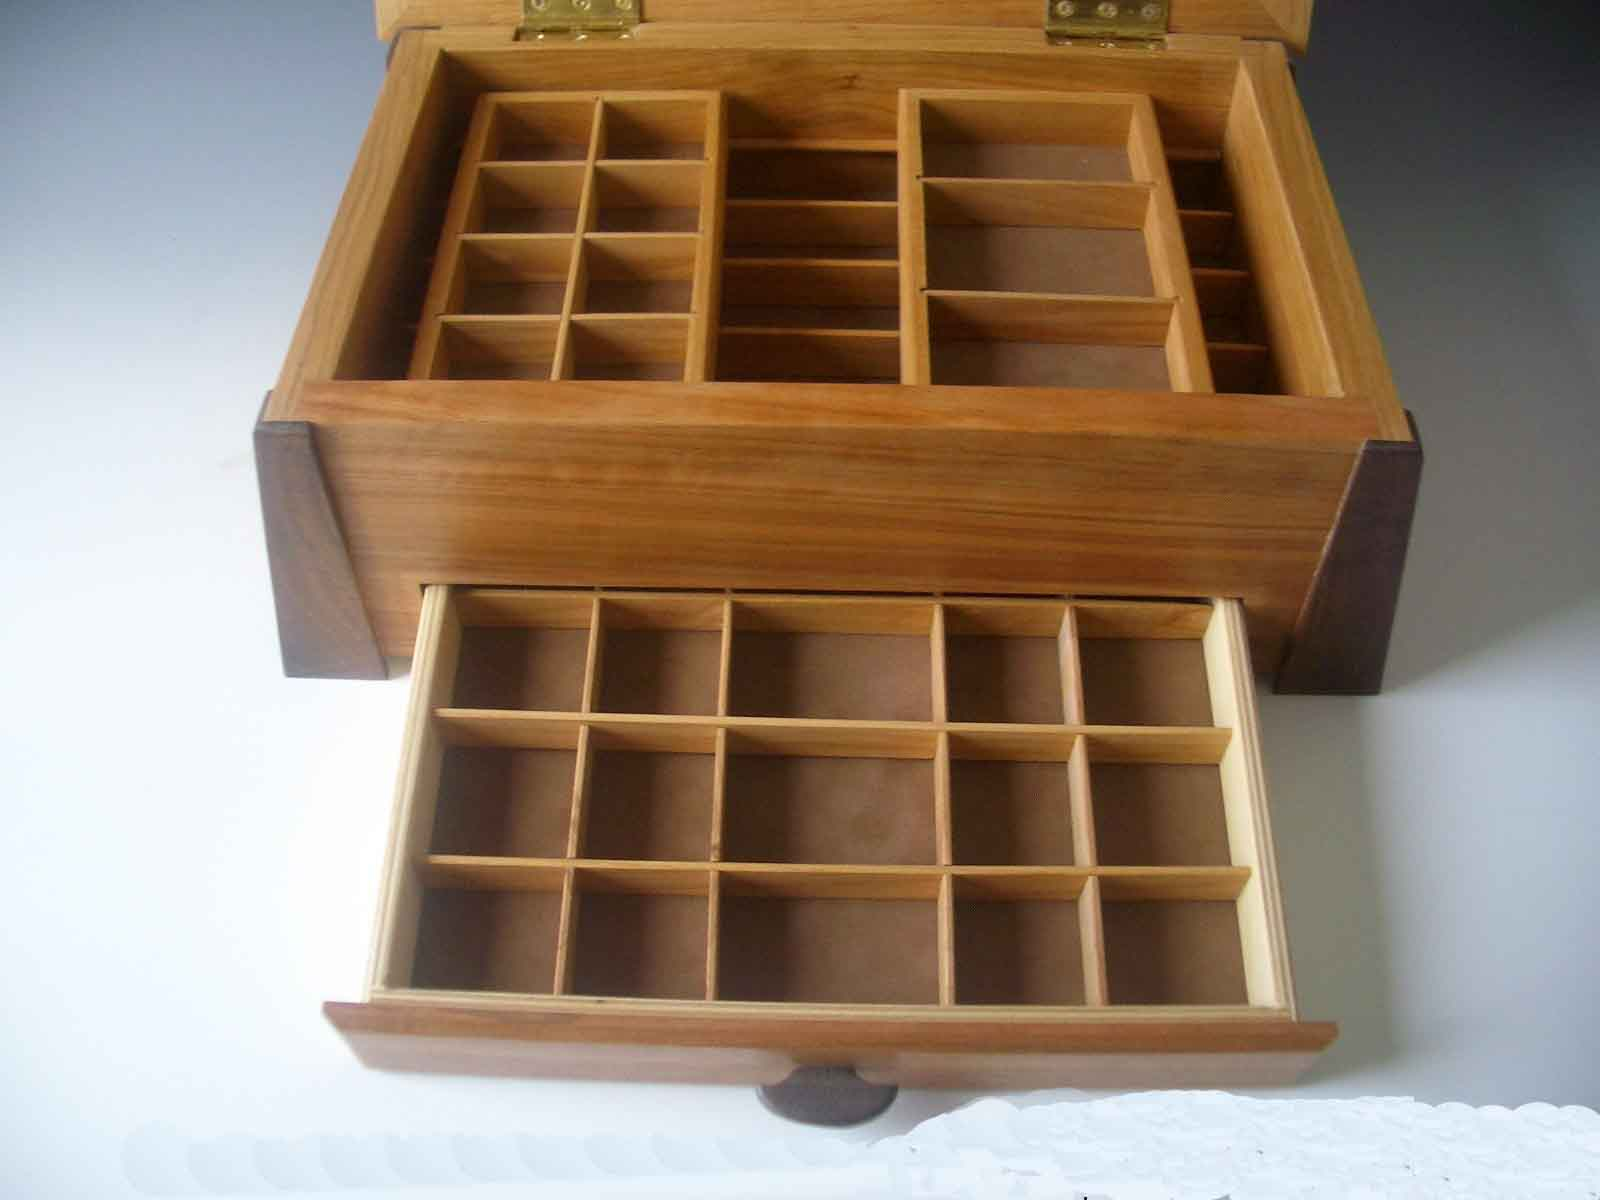 Solid wood jewelry box that is opened to show its two layers or jewelry organizers inside and the drawer that pulls out to store jewelry